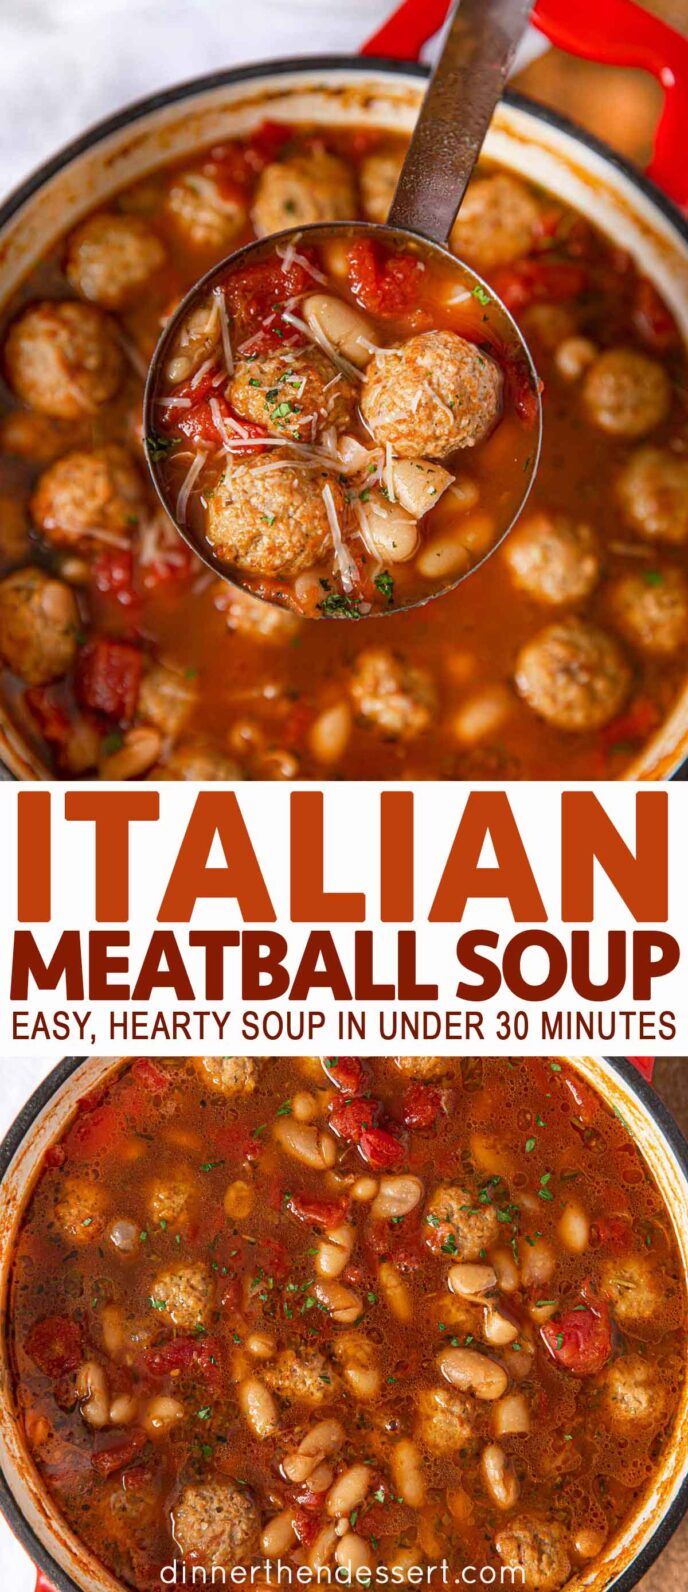 Collage photos of Italian Meatball Soup